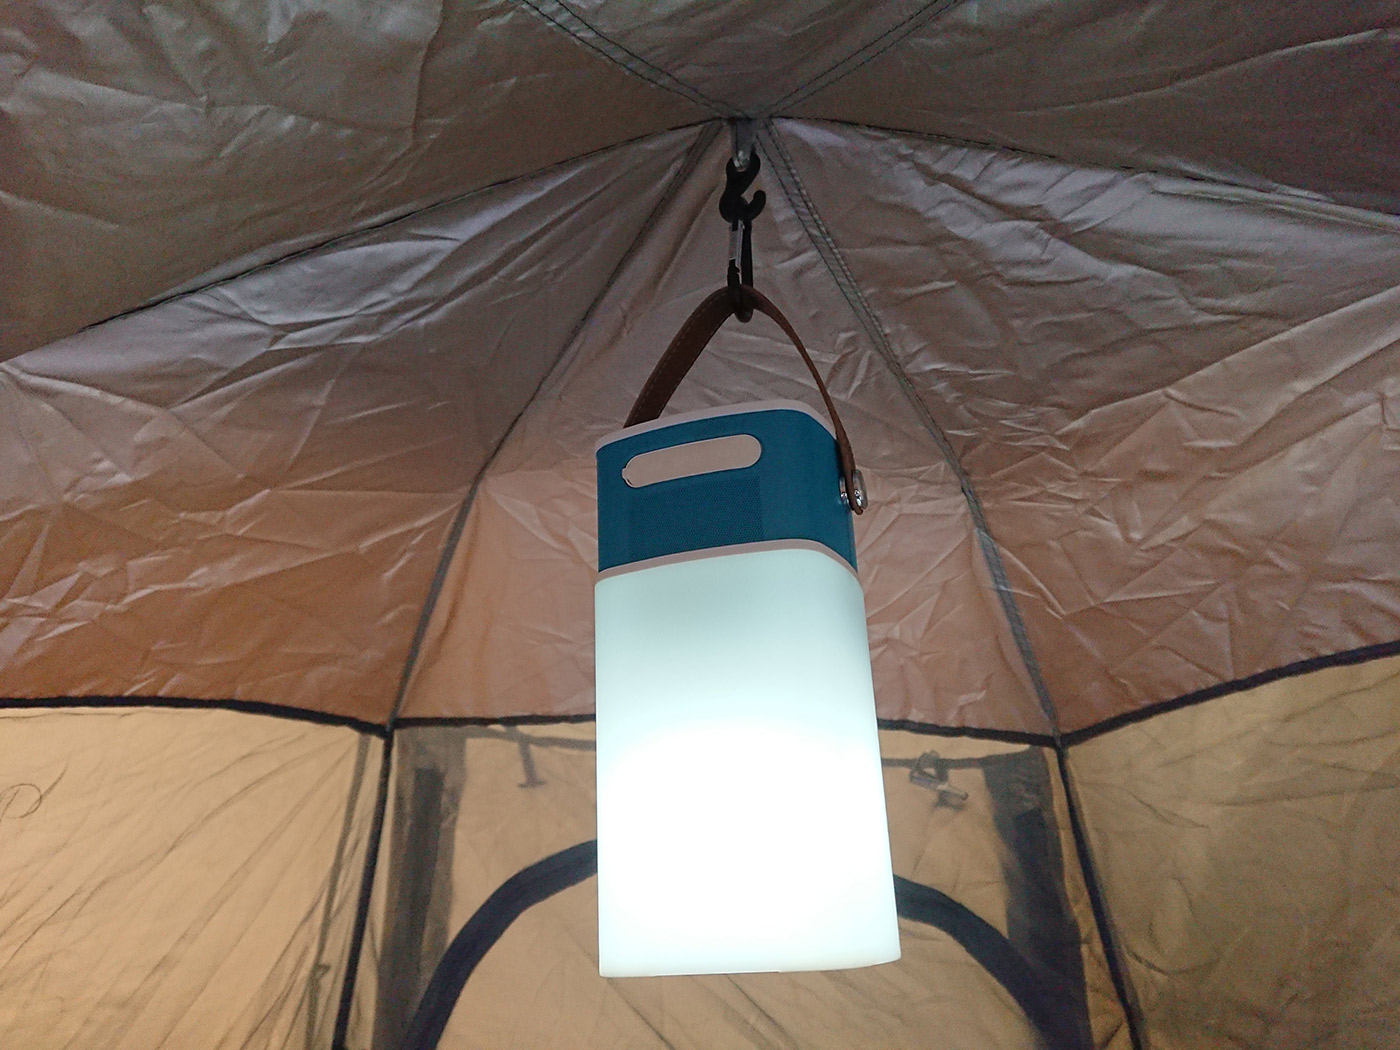 CAMPING | Hewolf Automatic Hexagonal Tent In Camel Brown